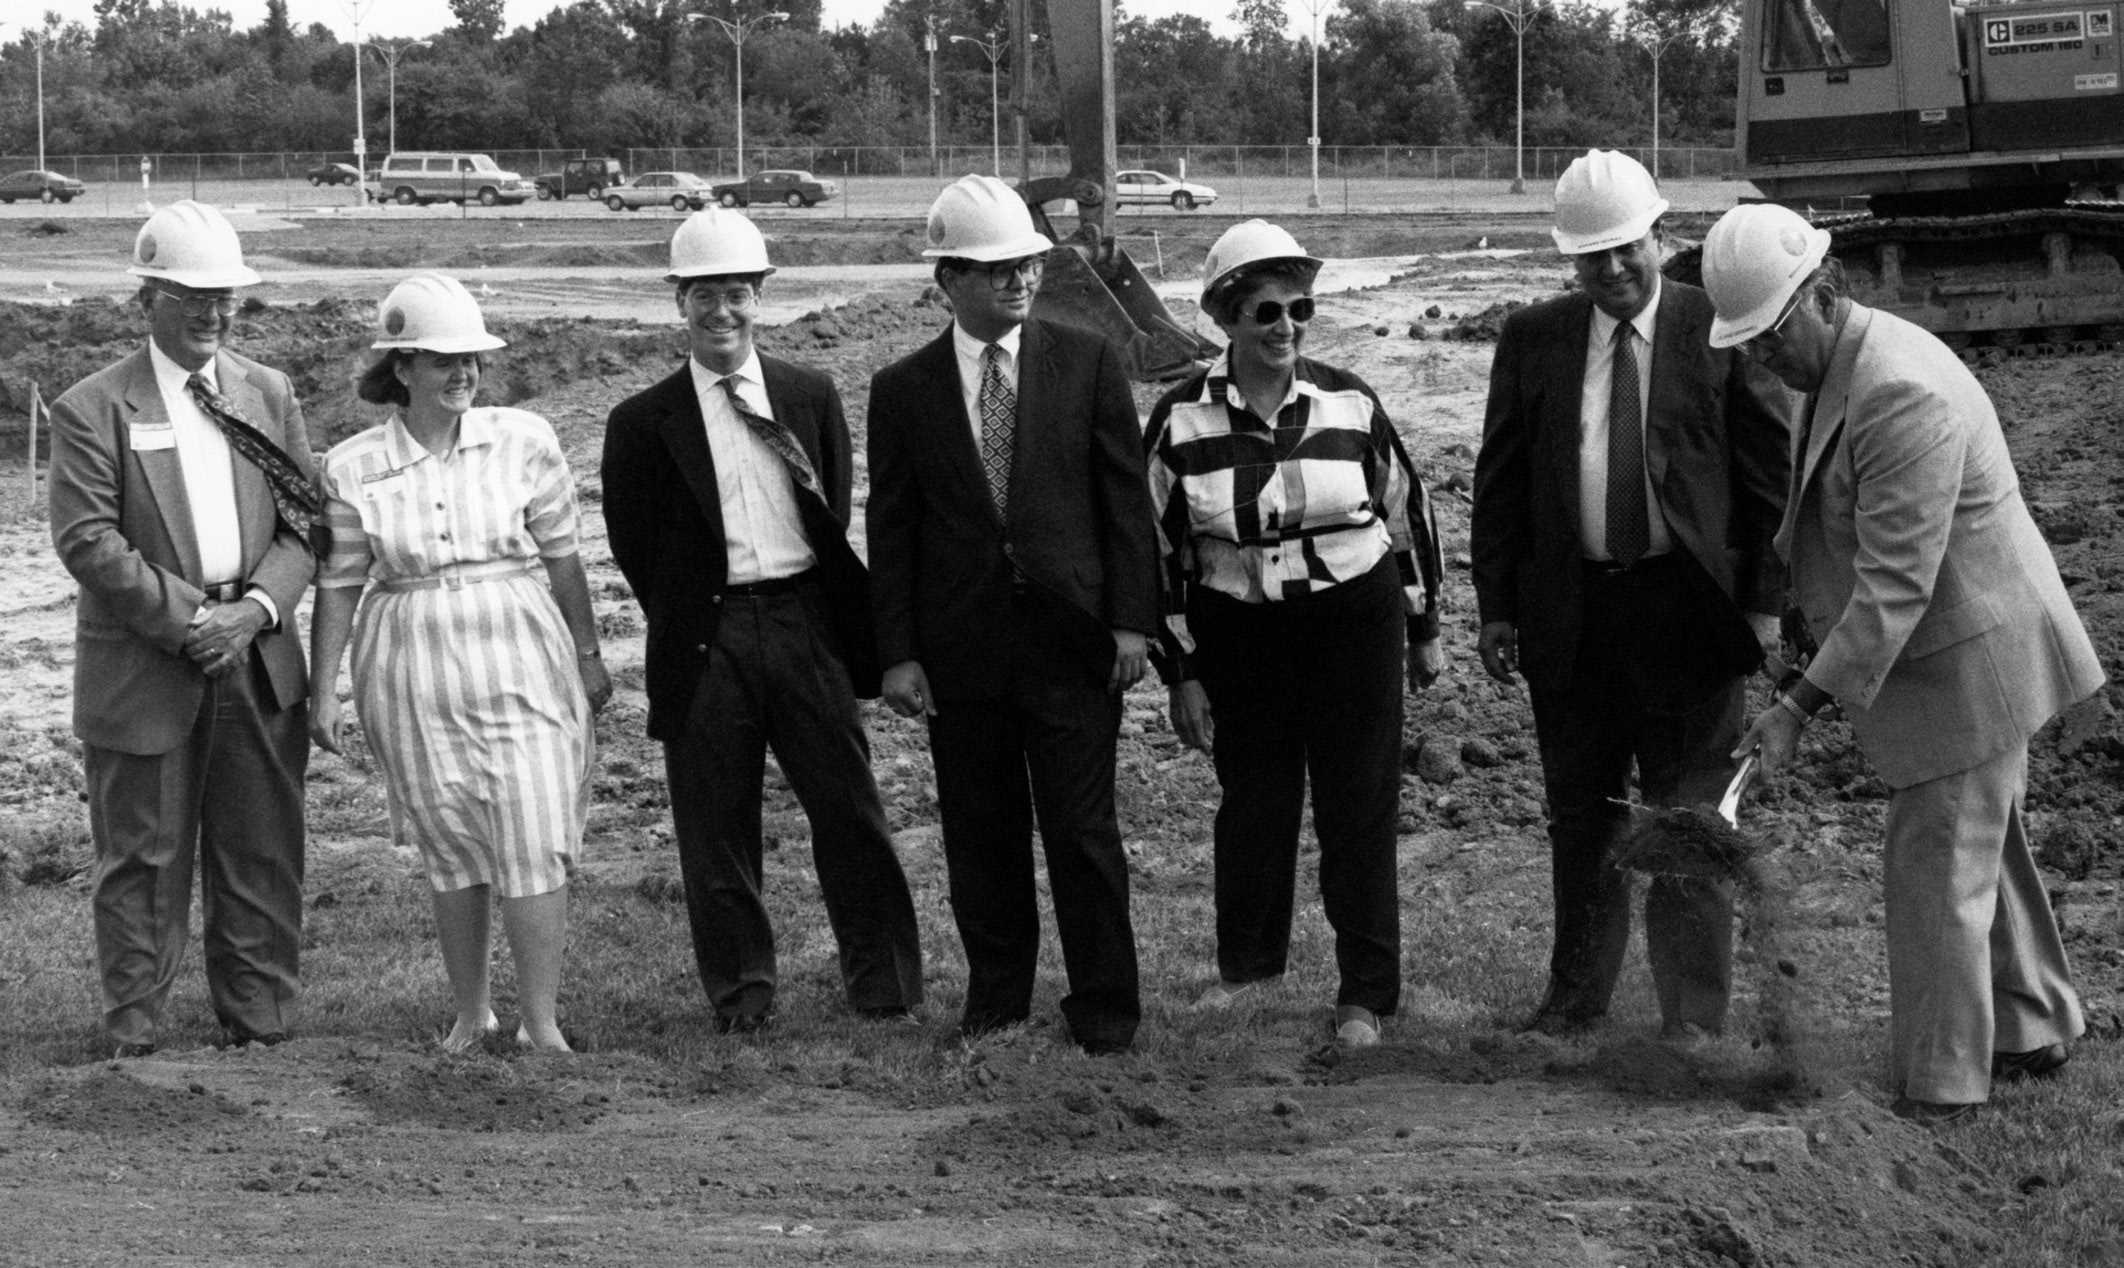 The McDowell Center was a major construction event that occurred on campus during the 90s. Schoolcraft's president at the time, Dr. Richard McDowell, right, breaks the ground for the new building. Next to him, from right to left are Board of Trustee members Richard Devries, Mary Breen, Stephen Ragan, John Walsh, Patricia Watson and Harry Greenleaf.